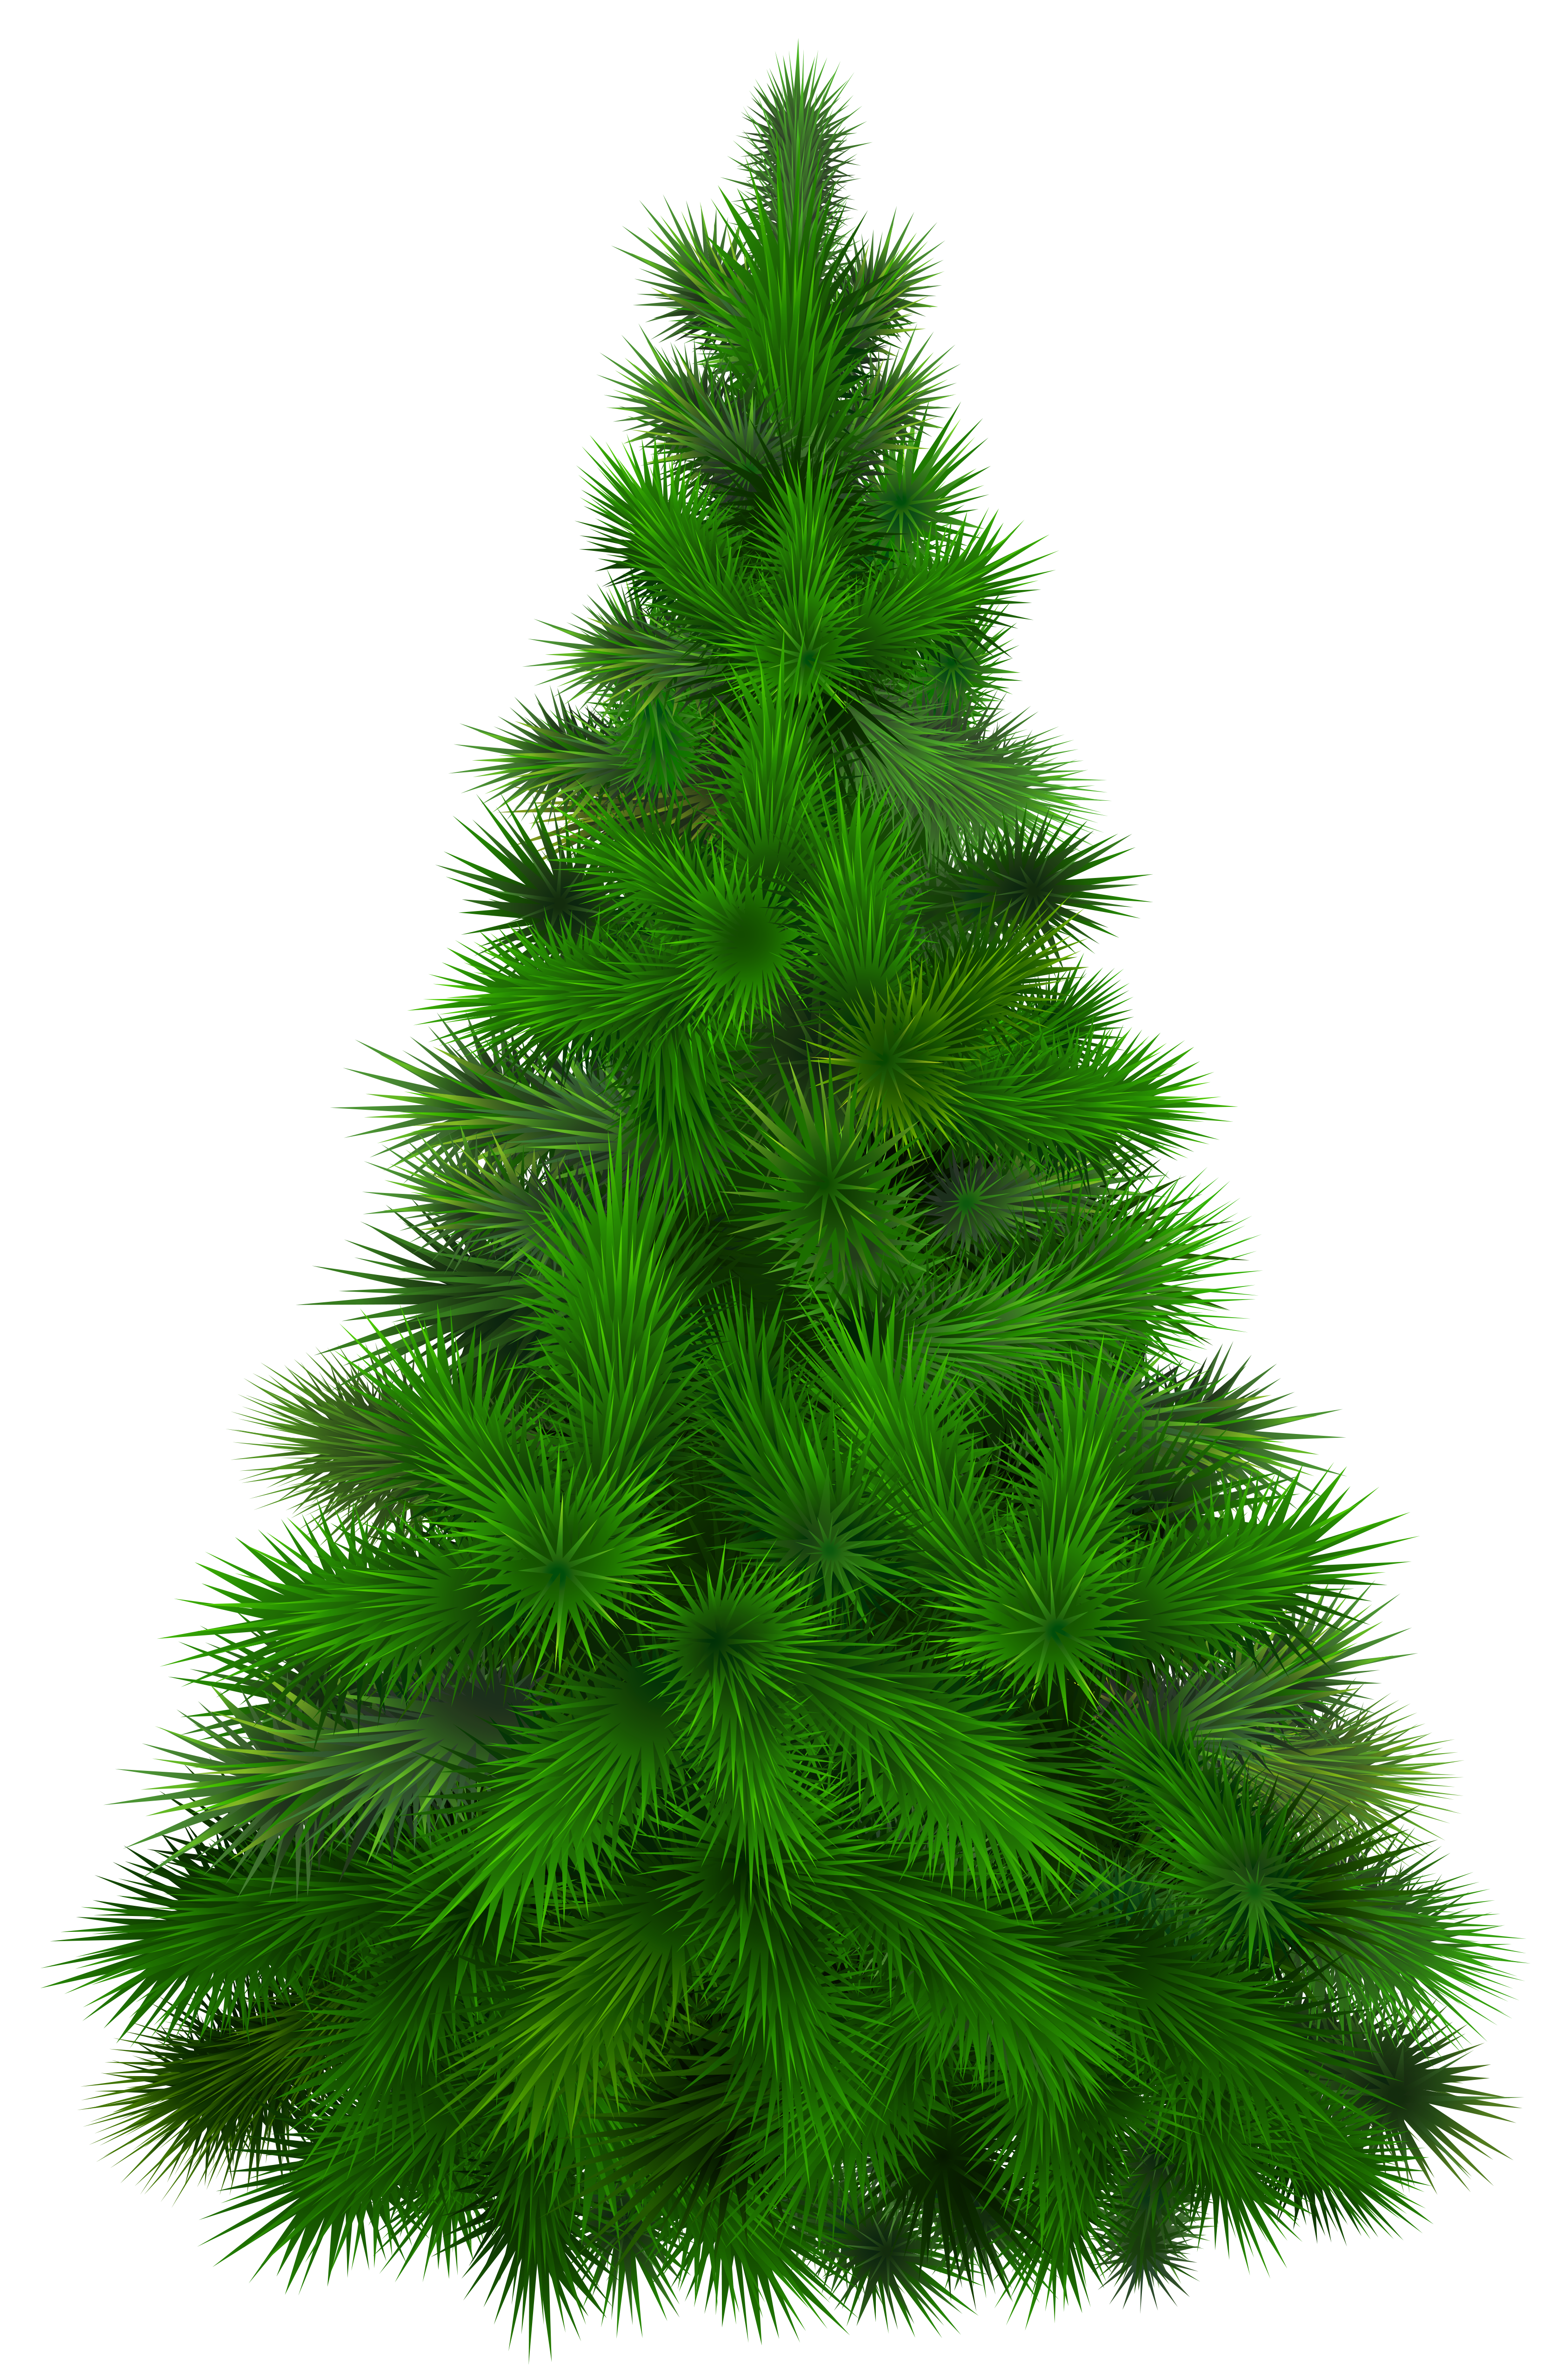 hight resolution of pine tree clipart cypress tree pencil and in color pine